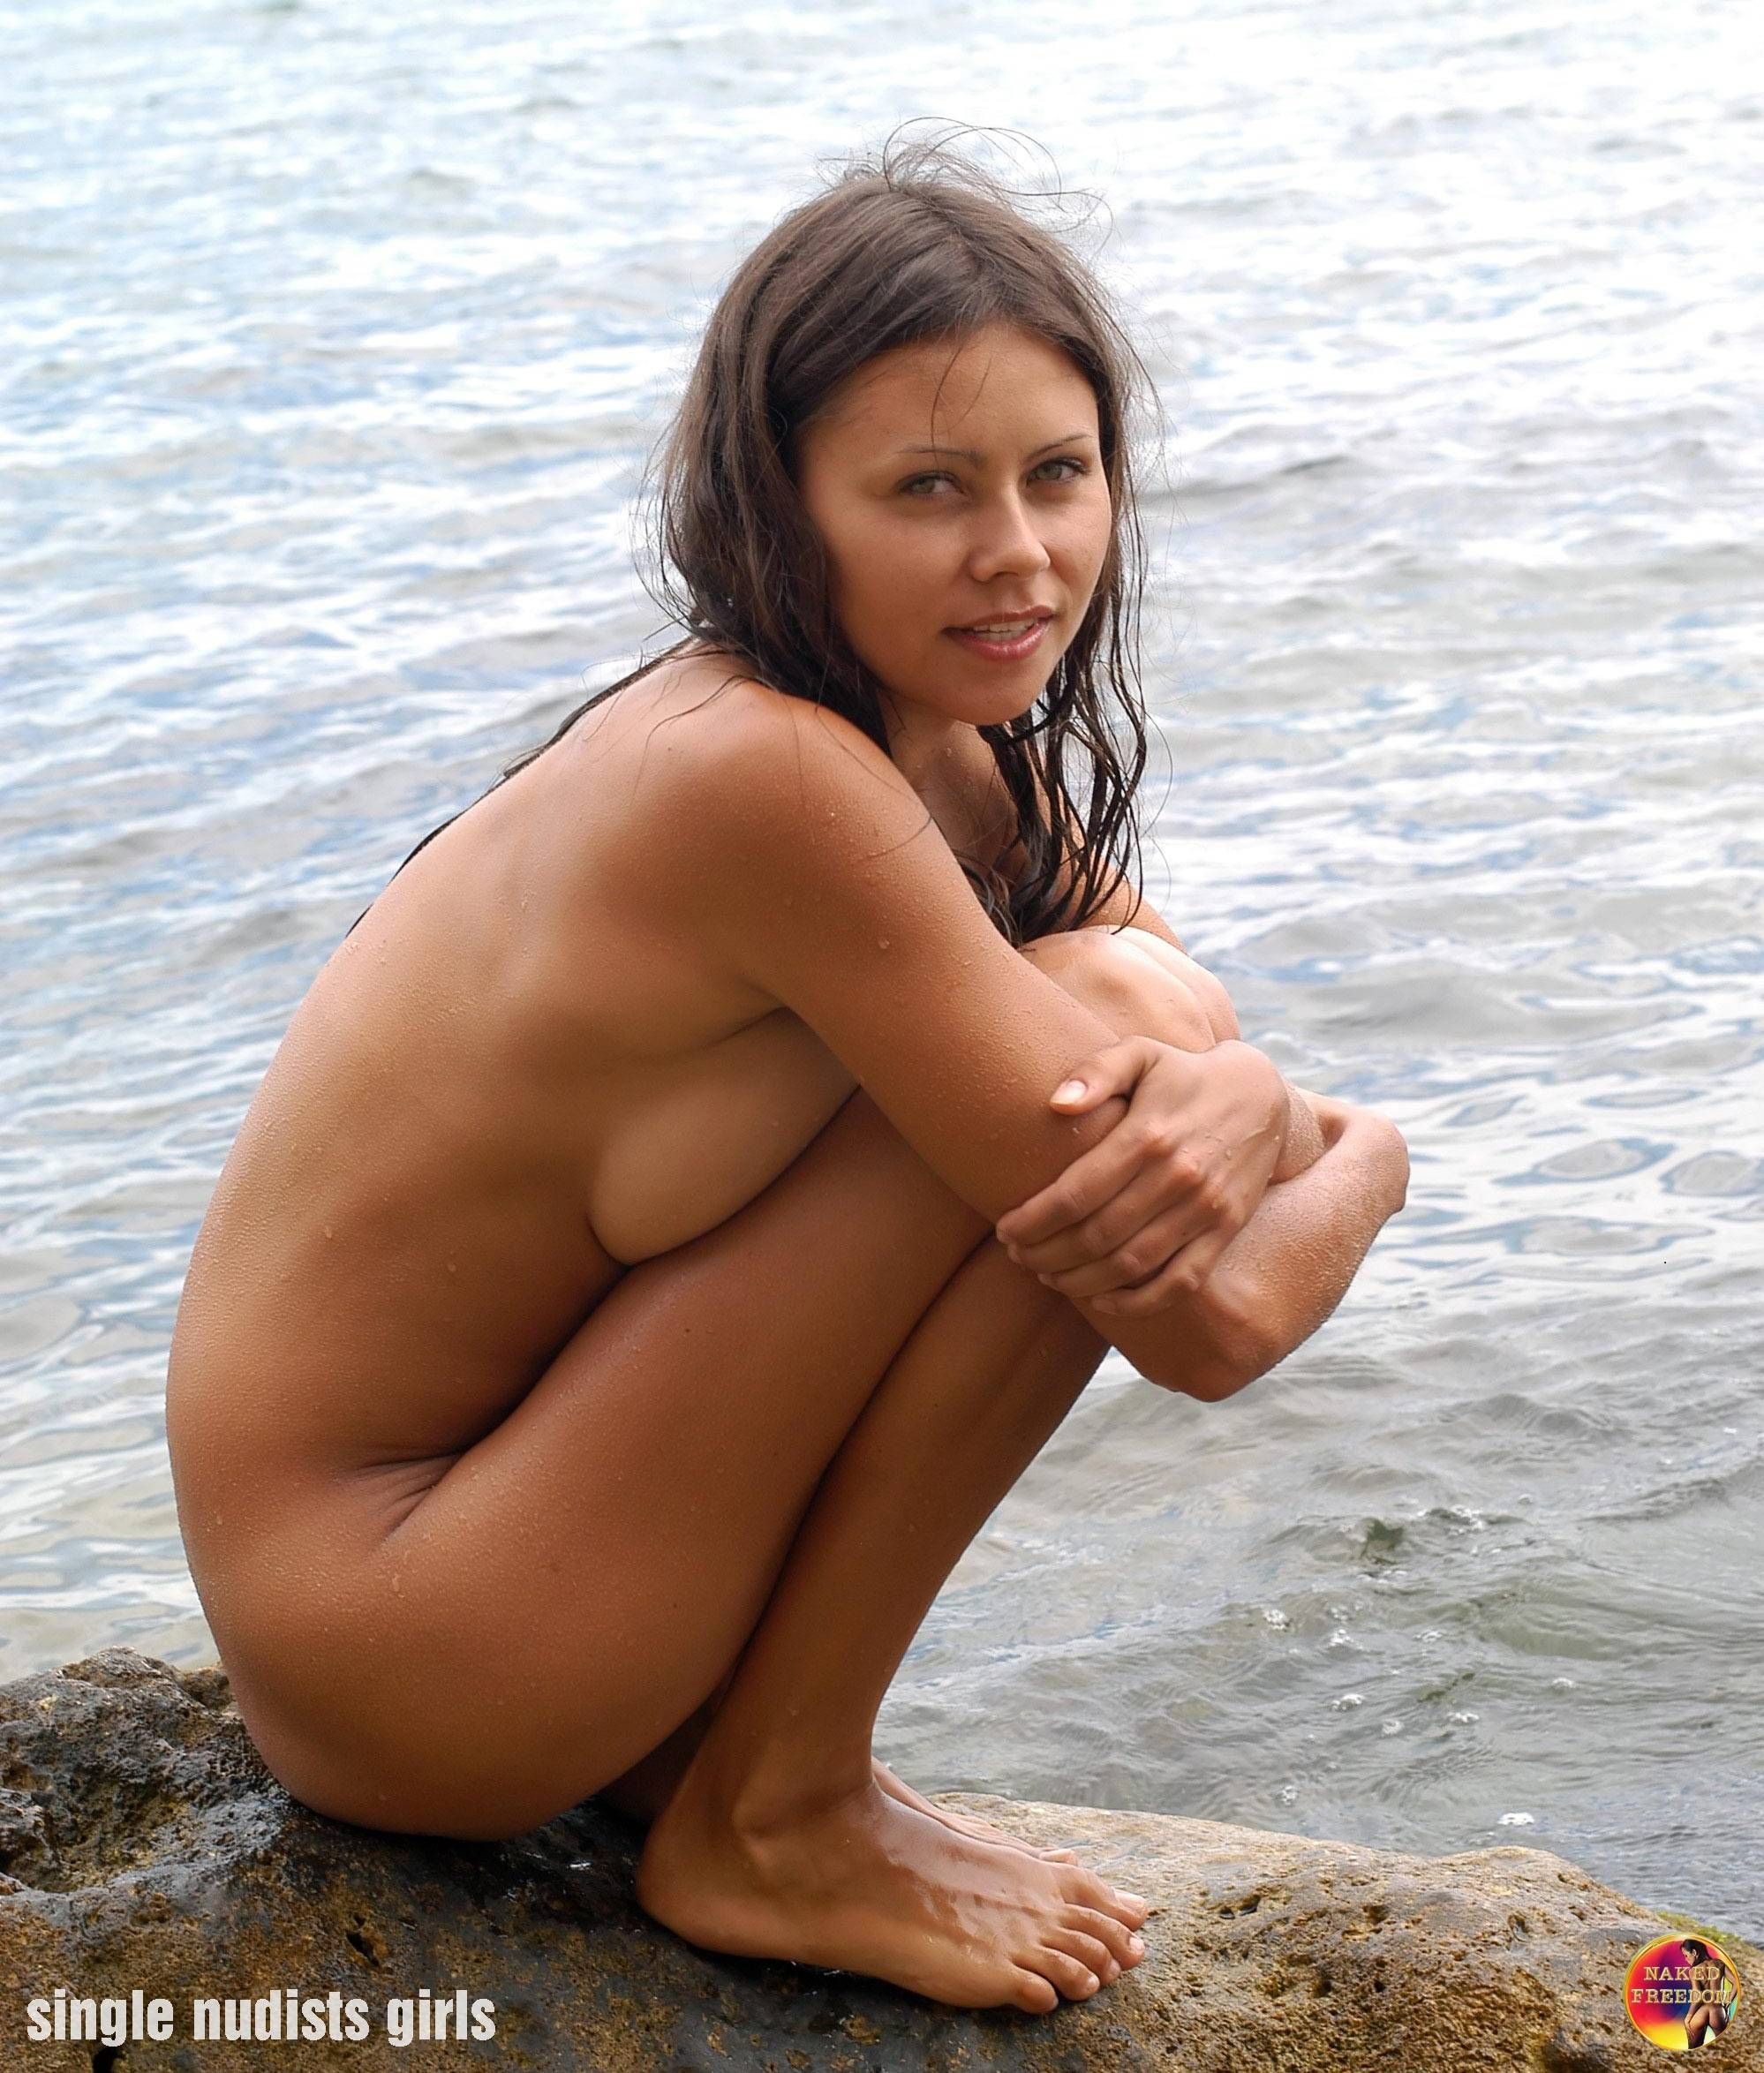 Photos of Young Nudists-Young Girls Nudists Pictures - 2